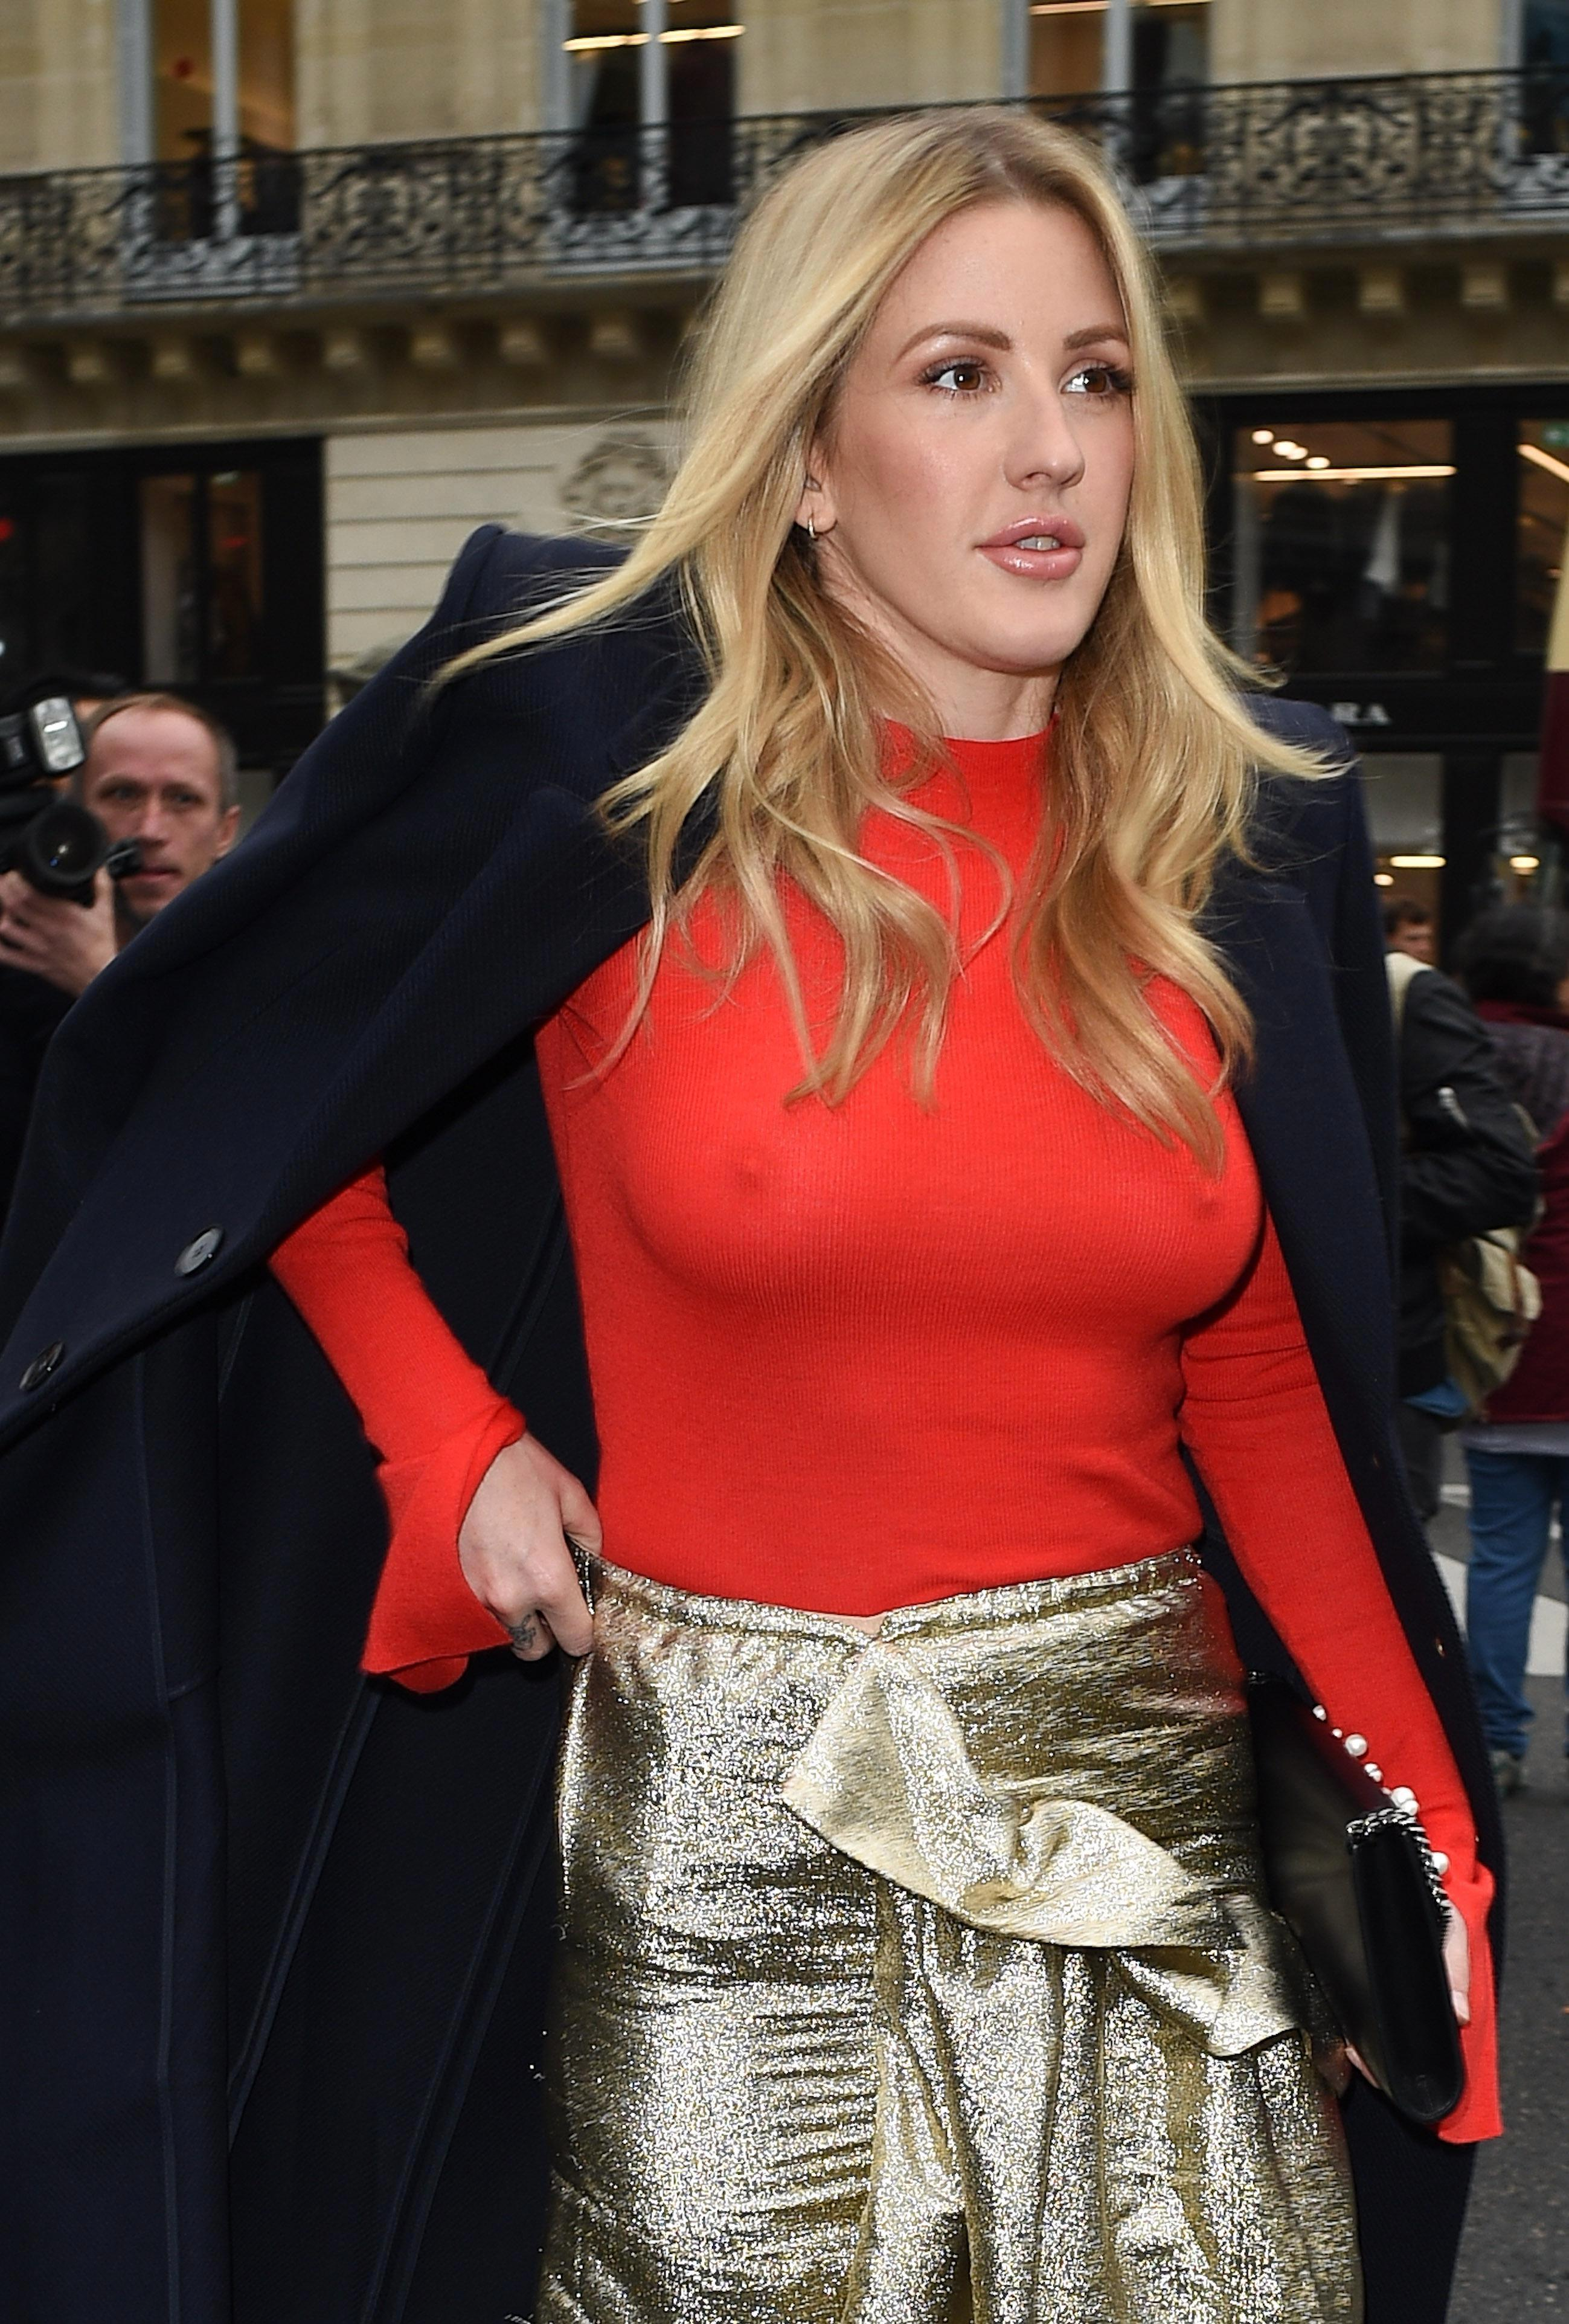 Ellie Goulding in a red see through top